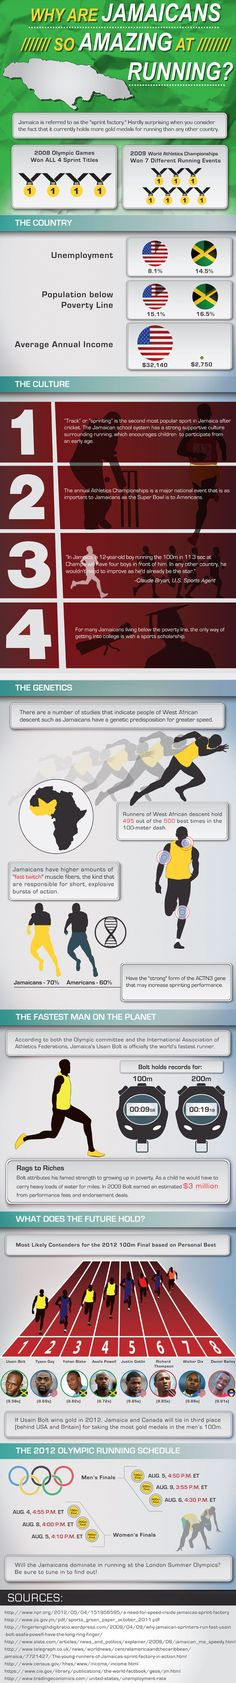 INFOGRAPHIC: WHY ARE JAMAICANS SO AMAZING AT RUNNING?